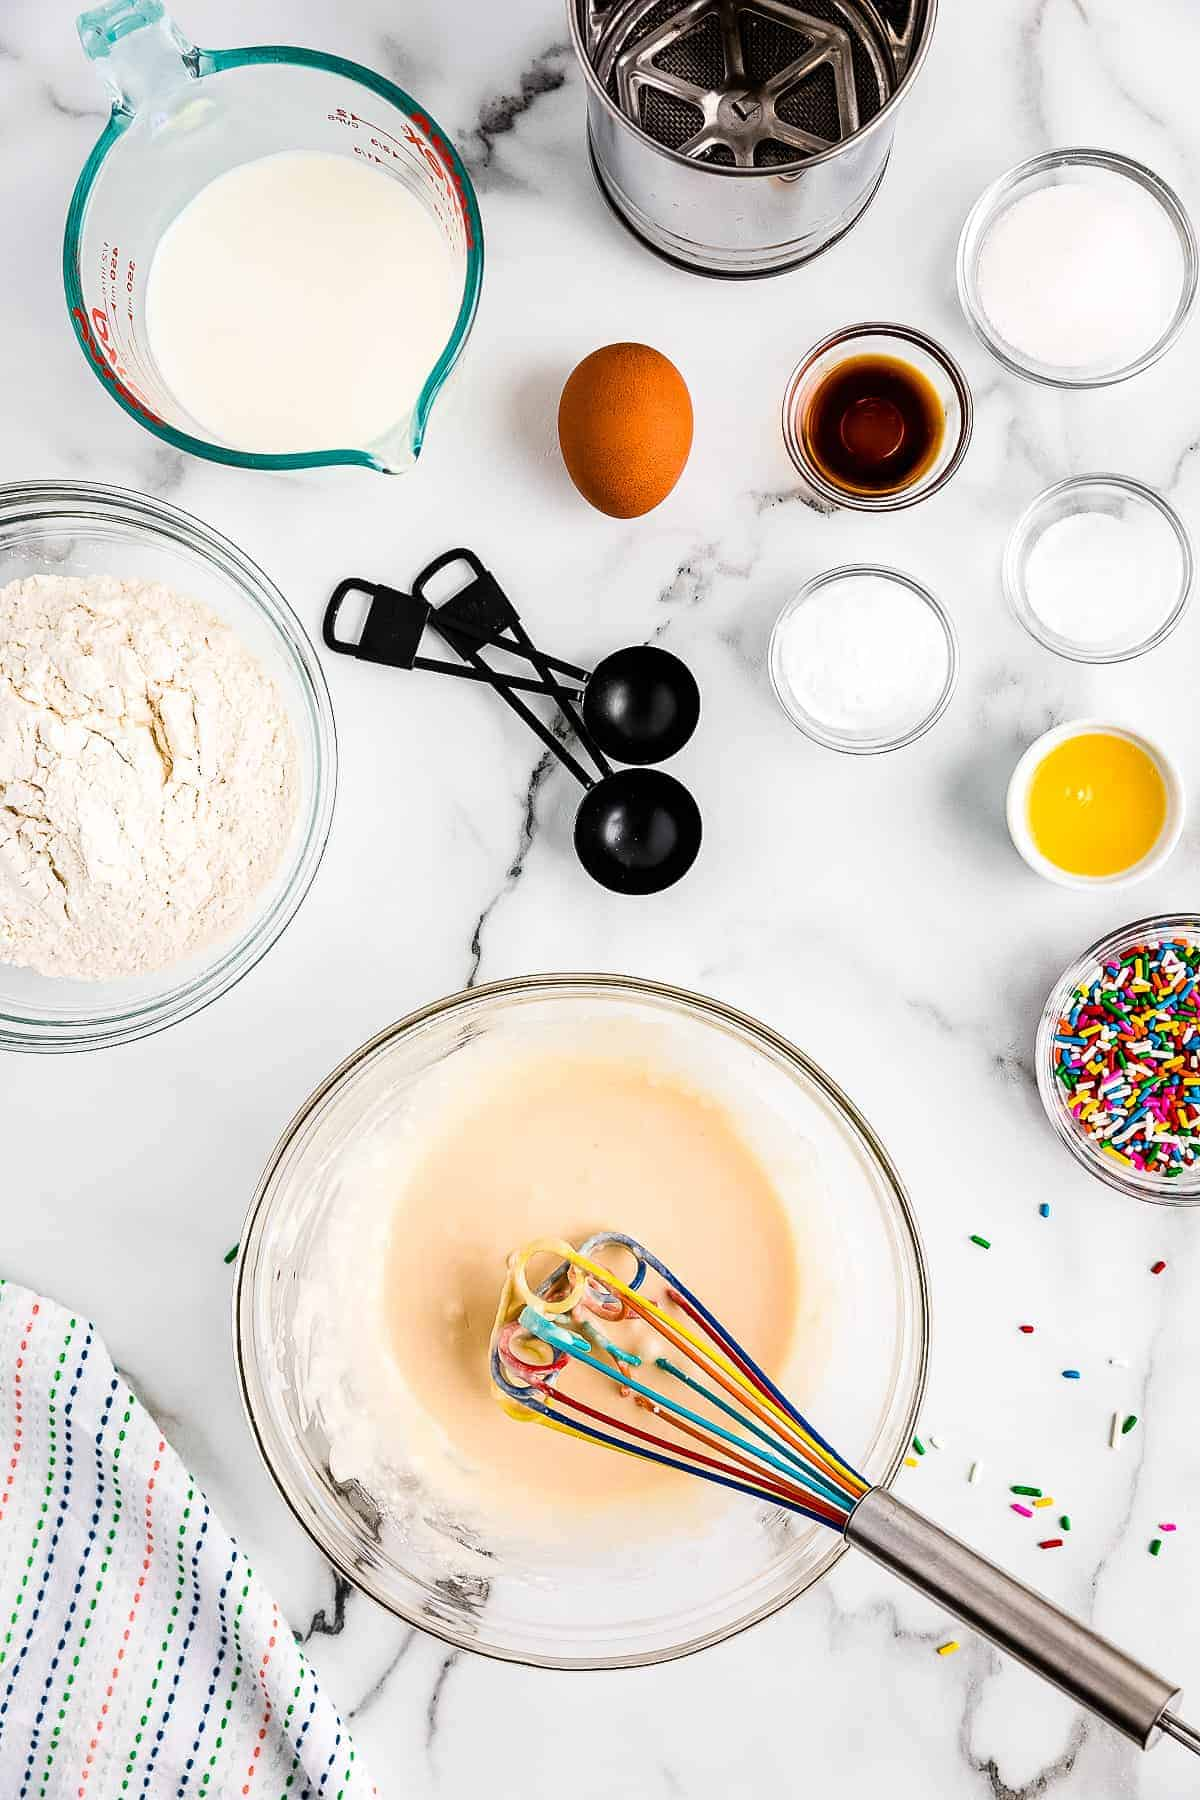 Ingredients in glass bowl mixed up to make frosting for funfetti pancakes